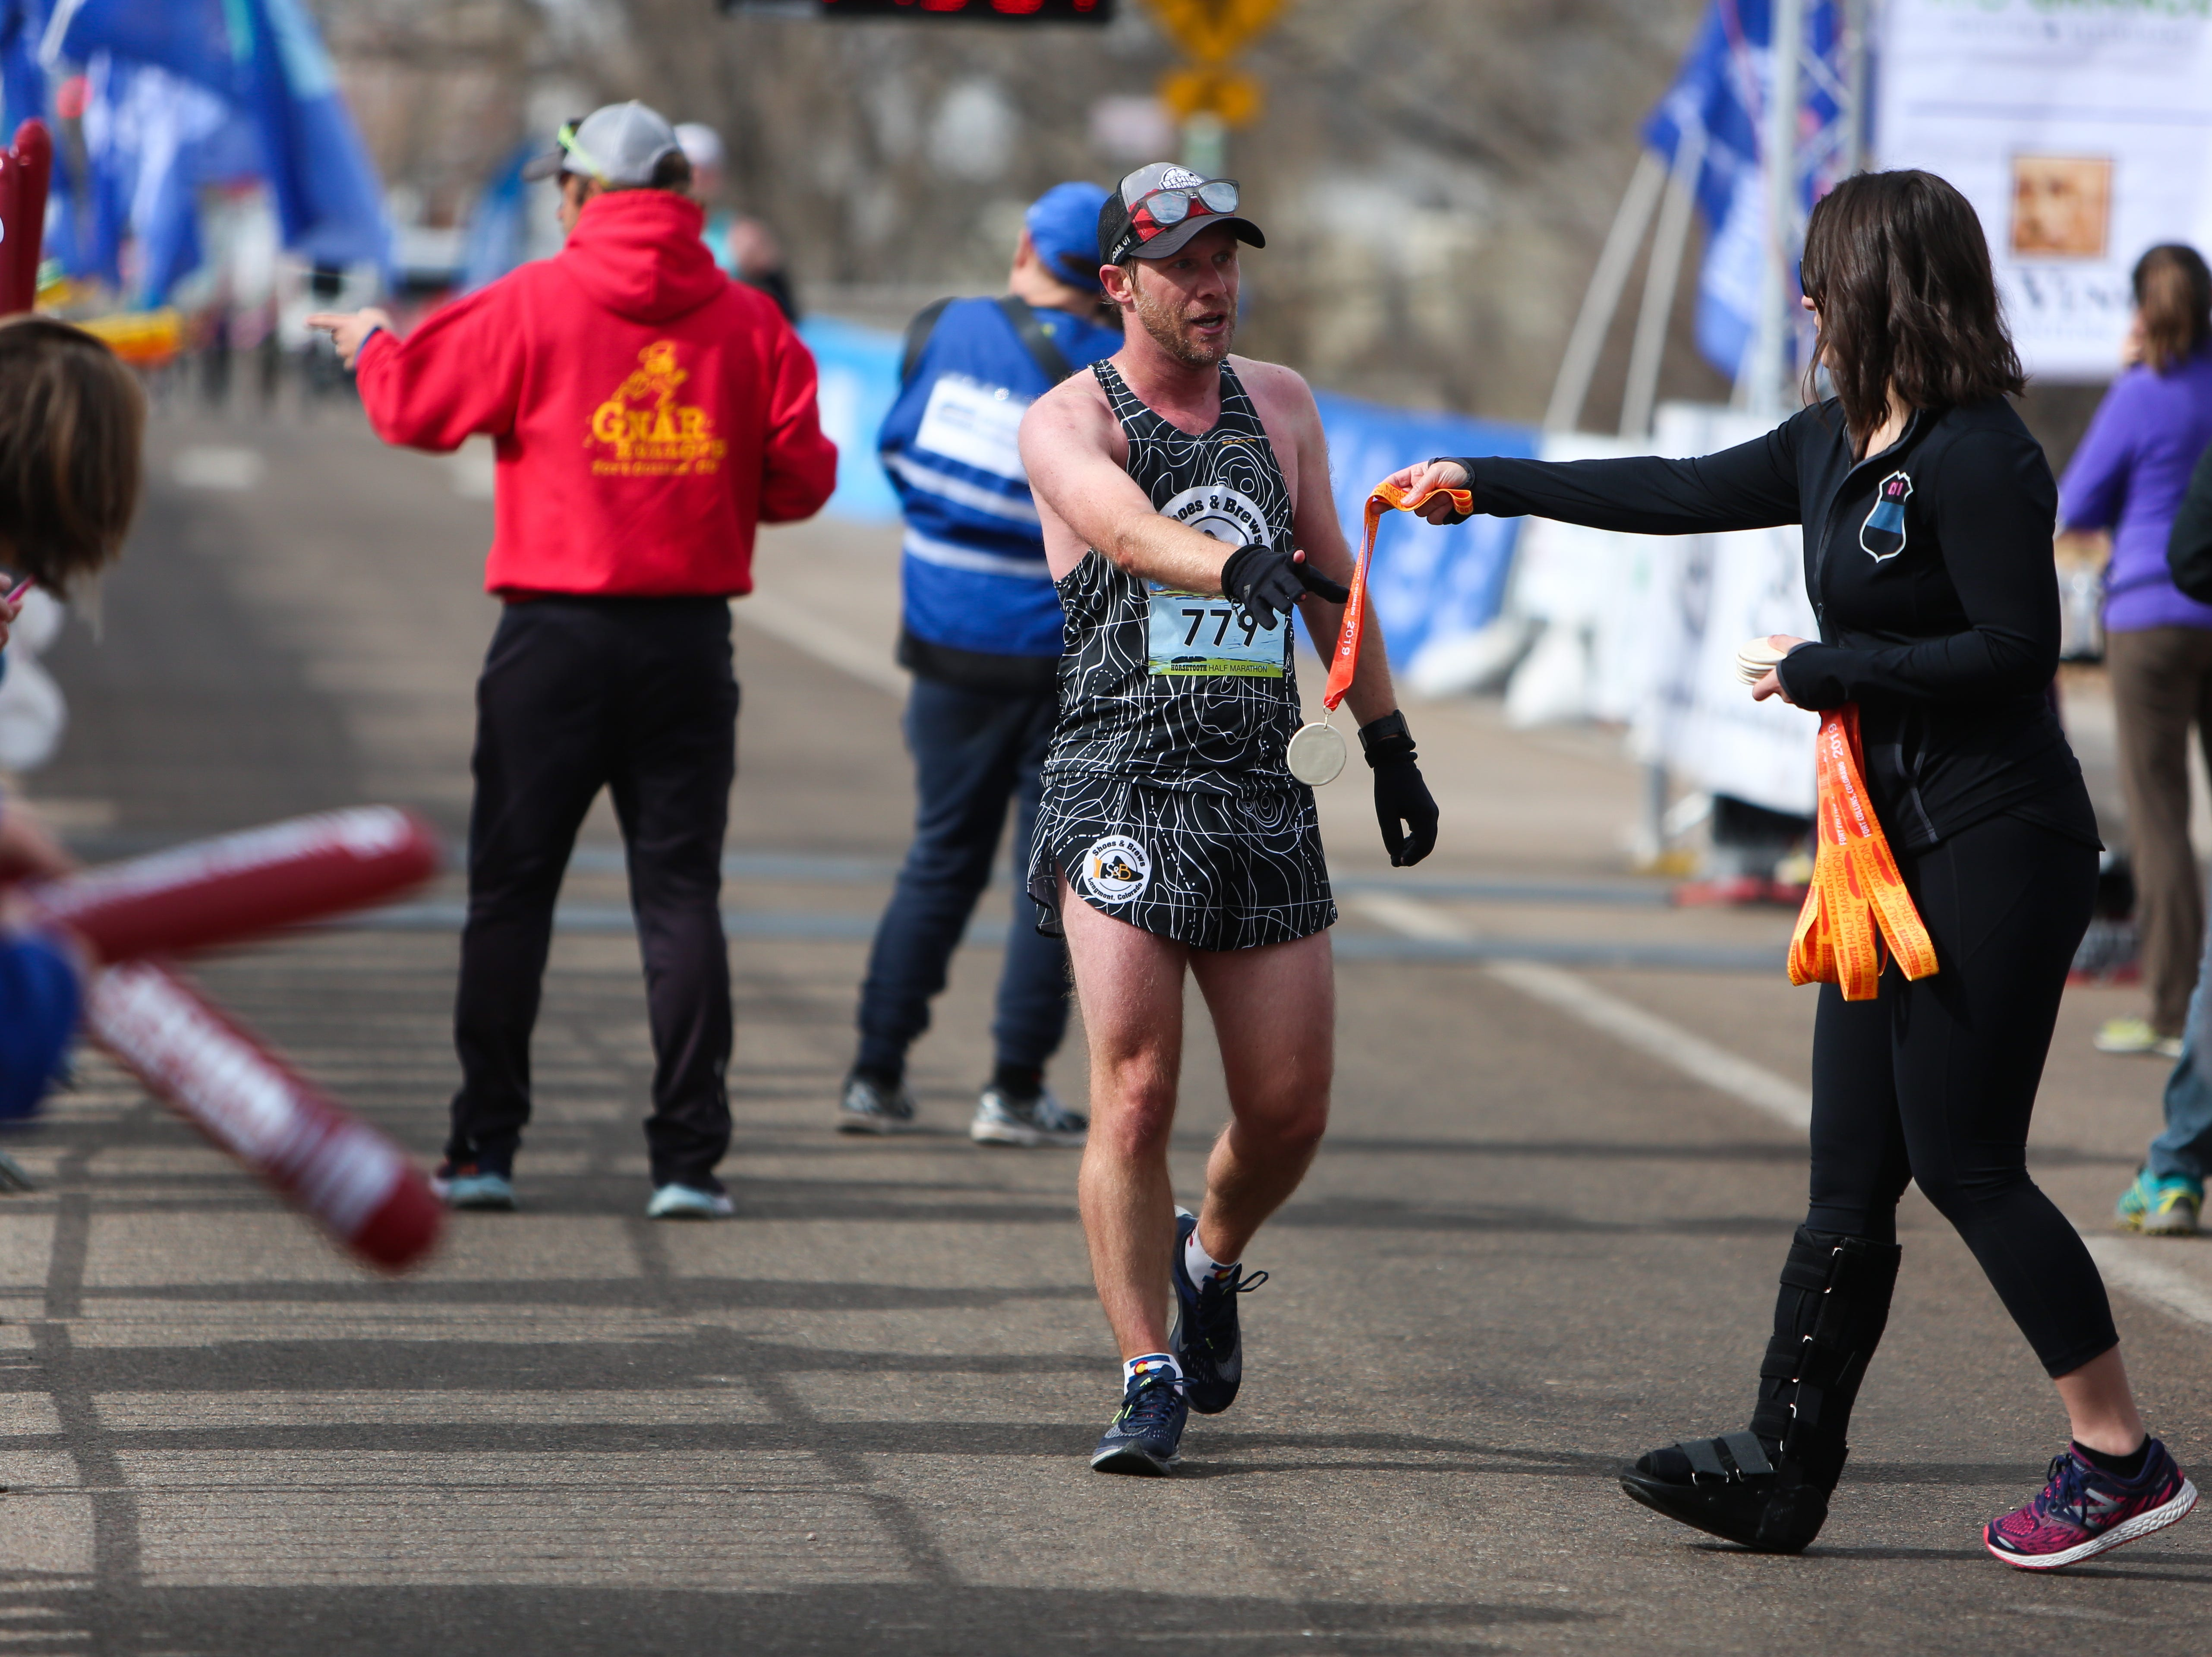 Runners are handed medals after completing the Horsetooth Half Marathon on April 14.